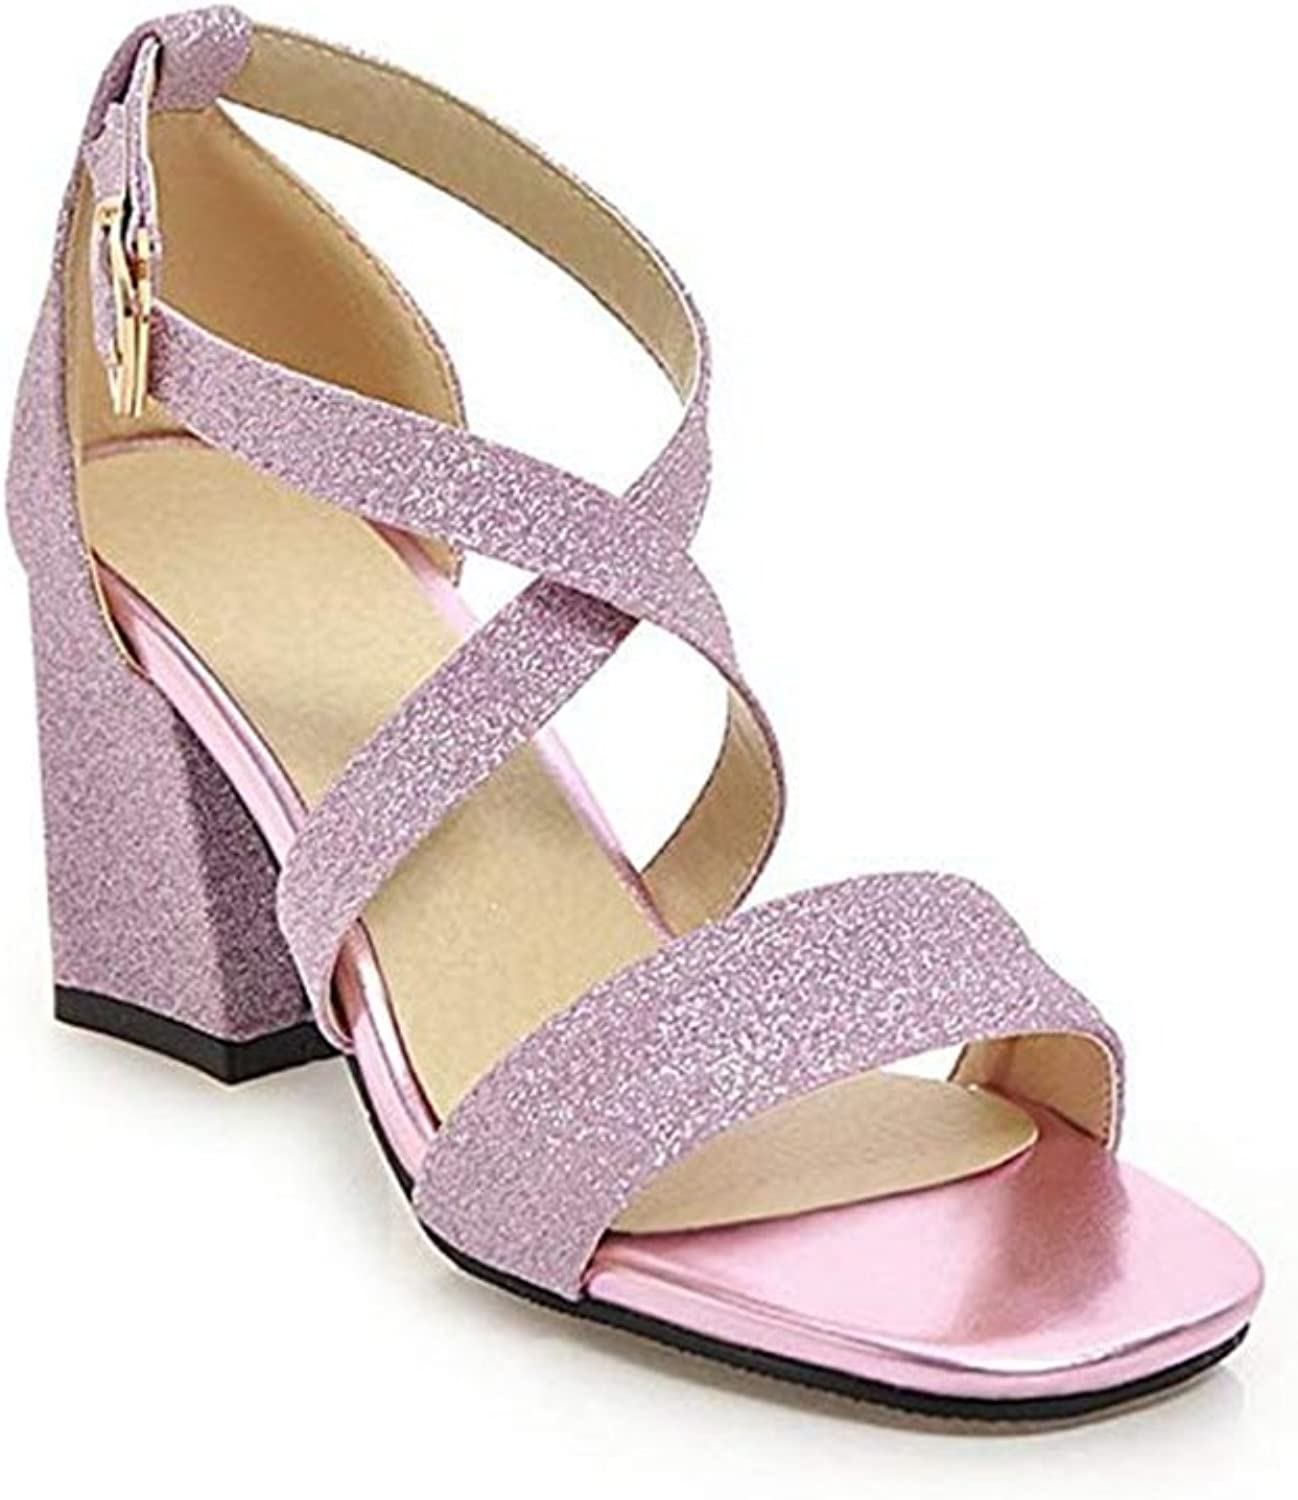 T-JULY Ladies Sex Sparkle Glitter Chunky Heels Open Toe Cross Strap Sandals for Women Evening Dress Pump shoes